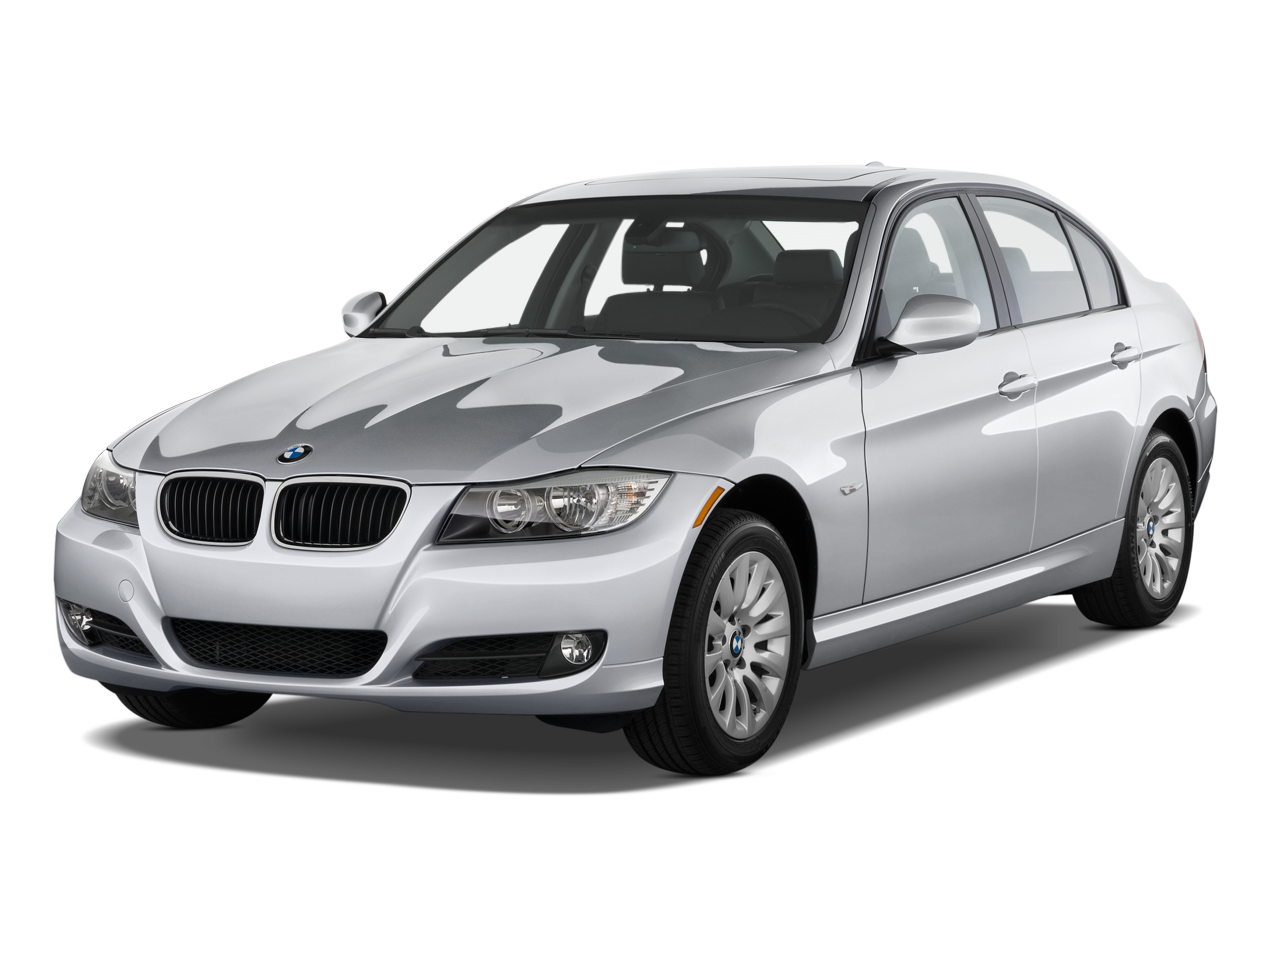 Bmw Png Image Purepng Free Transparent Cc0 Png Image Library